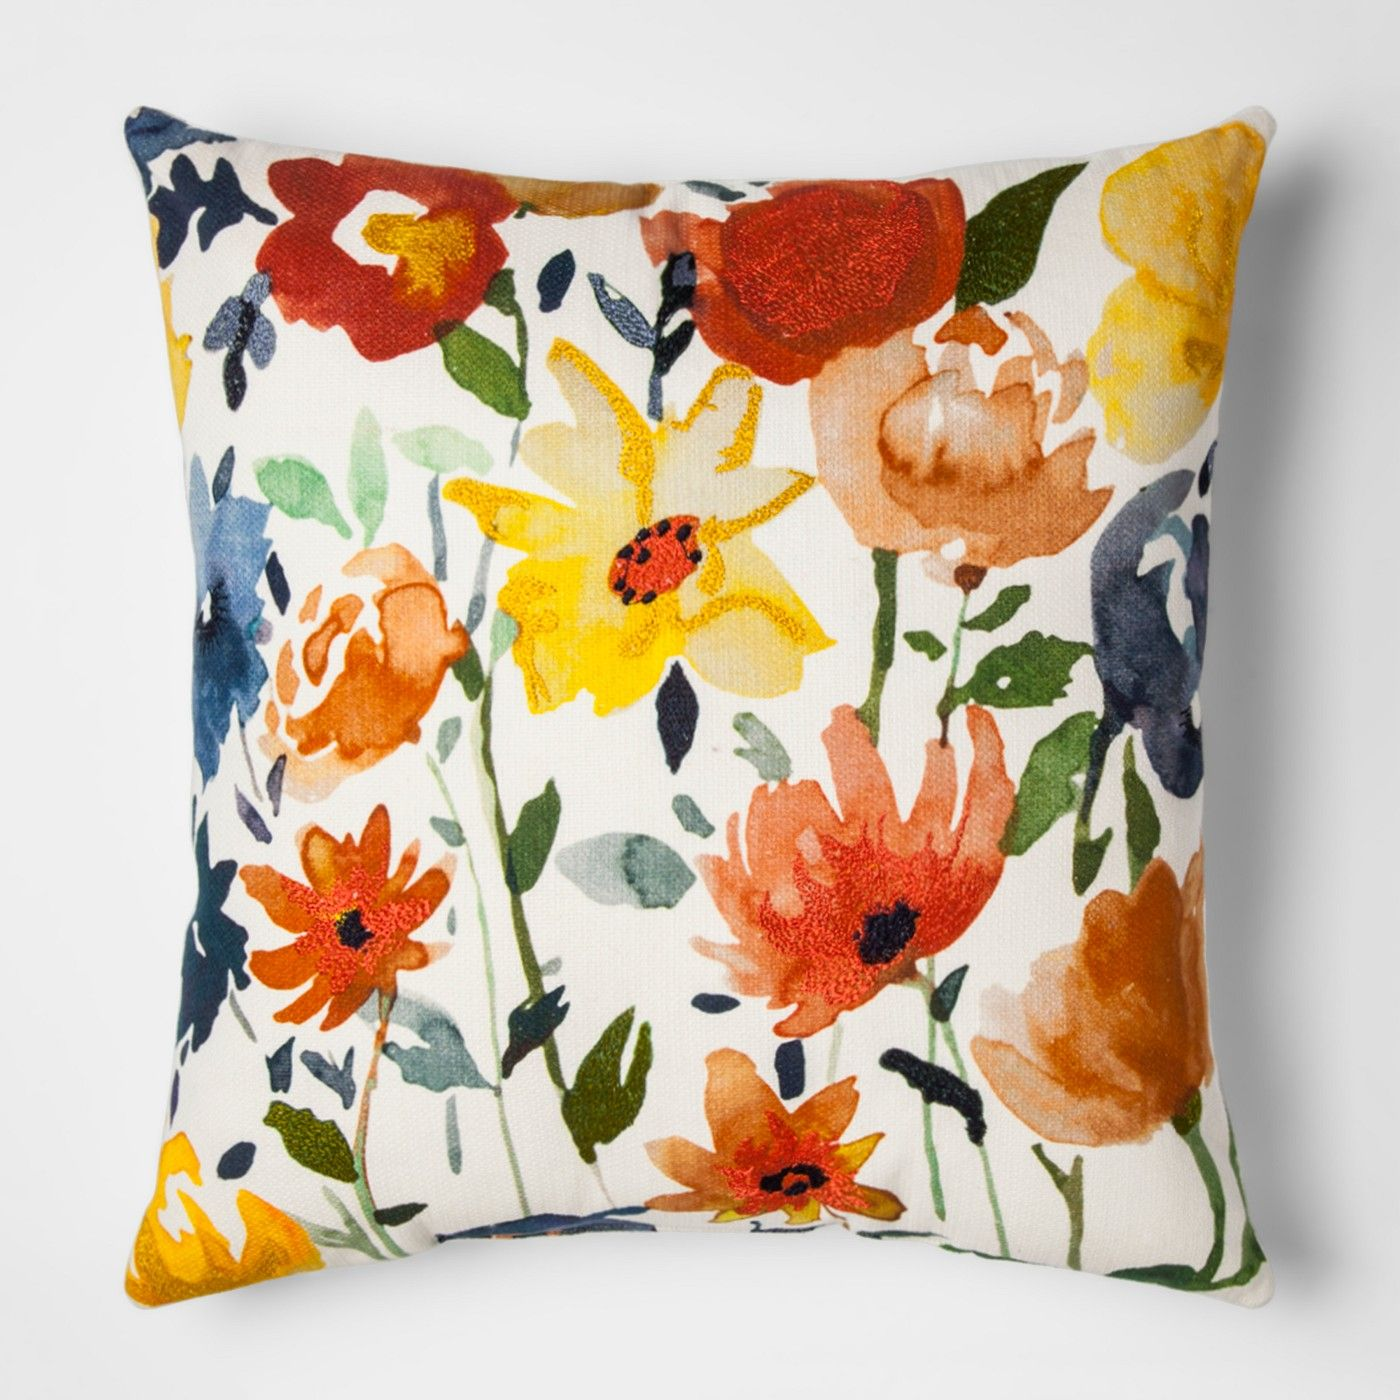 White And Cream Floral Throw Pillow Threshold™ image 1